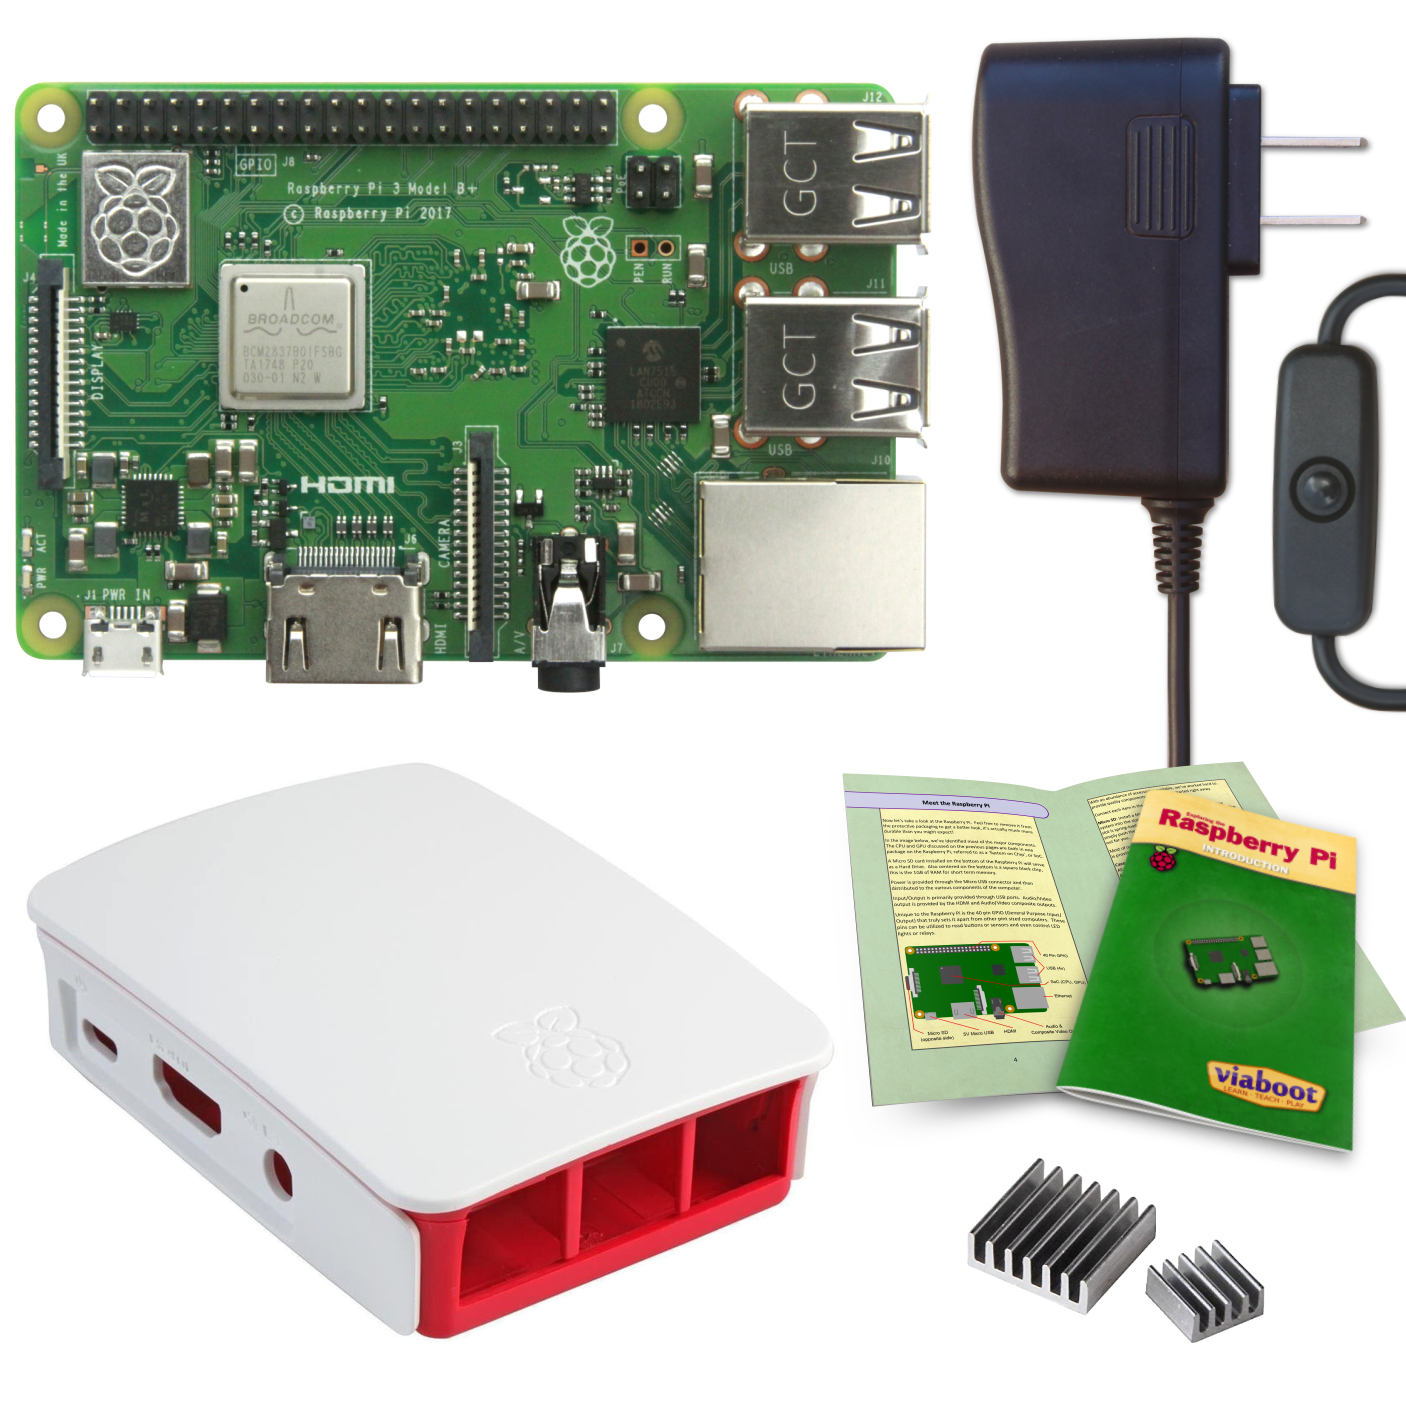 Viaboot Raspberry Pi 3 B+ Power Kit with Official Red/White Case